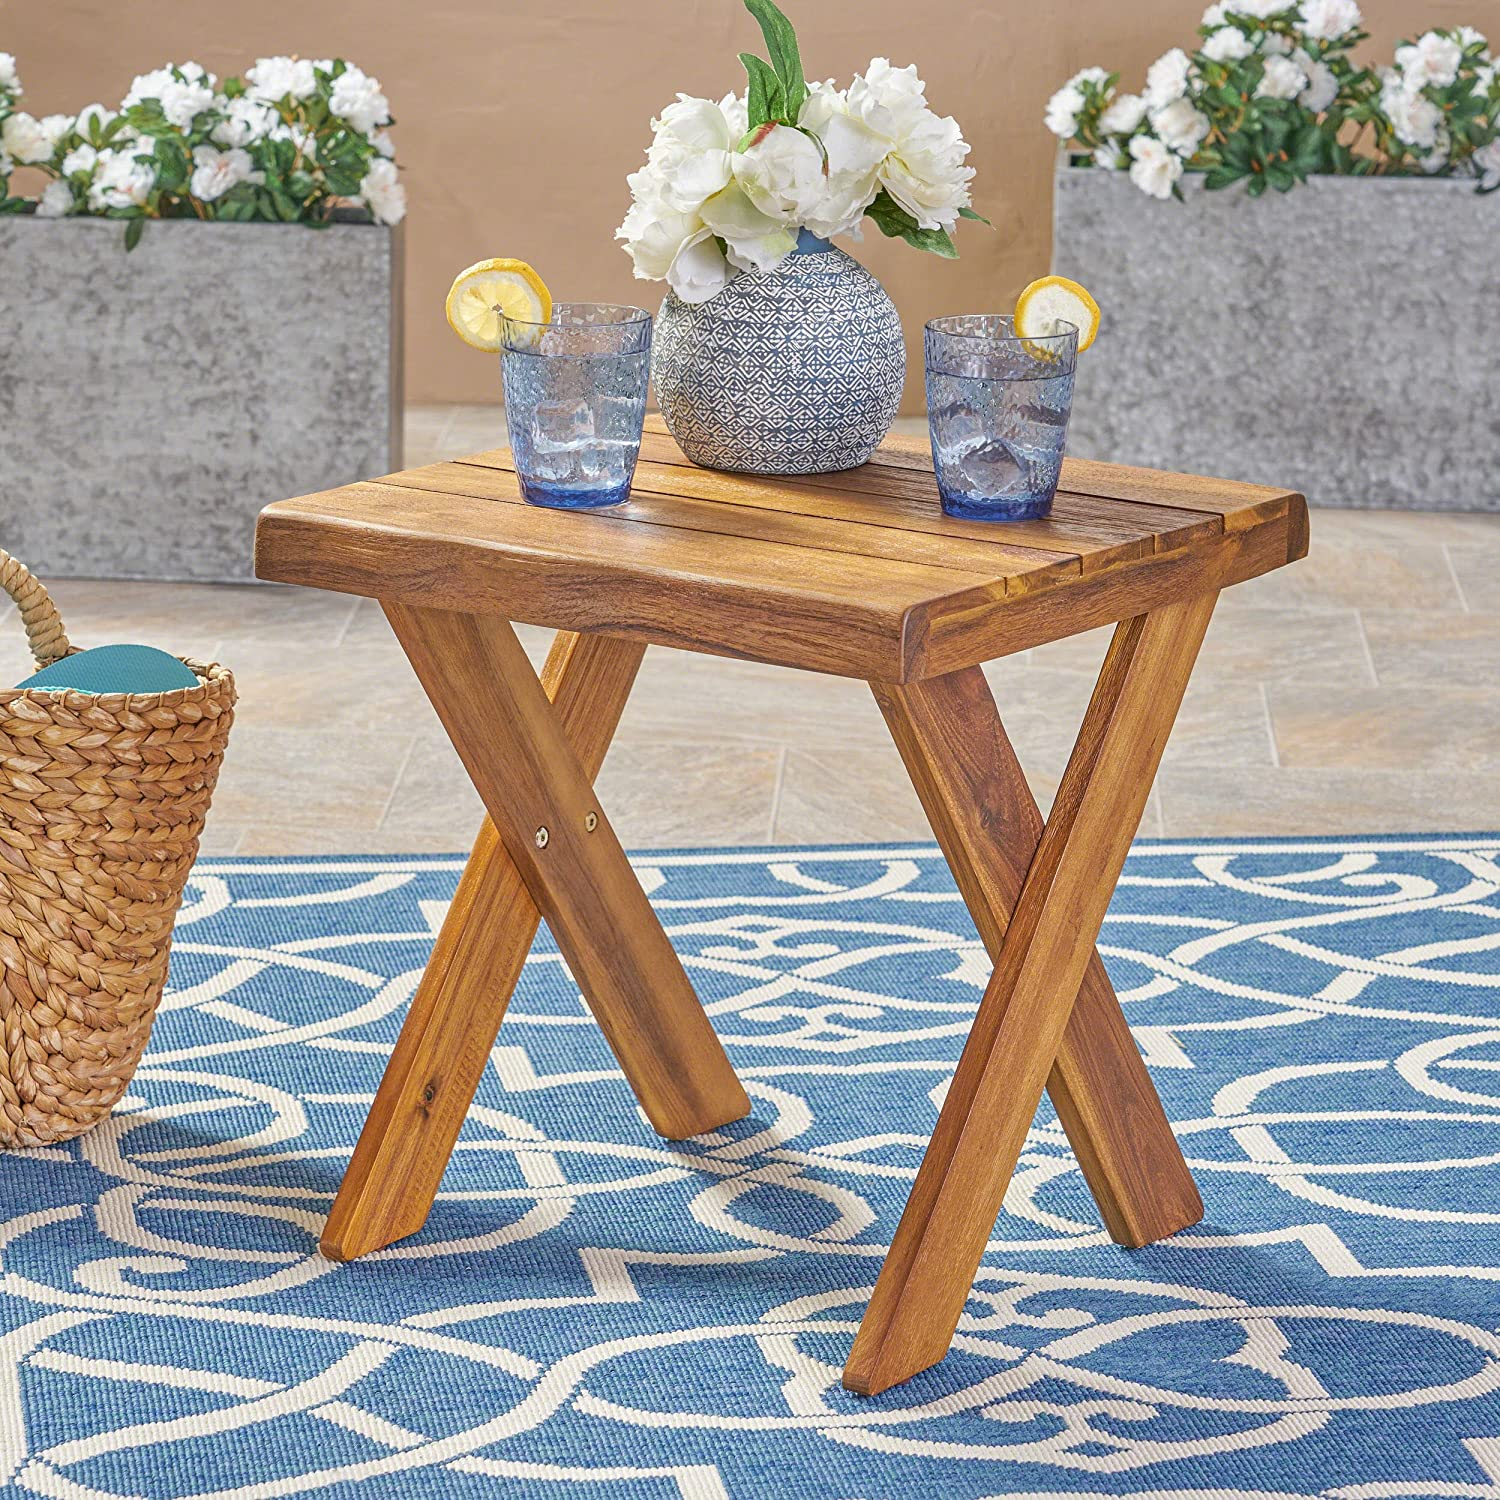 Christopher Knight Home Irene Outdoor Acacia Wood Side Table, Teak, Sandblast Finish